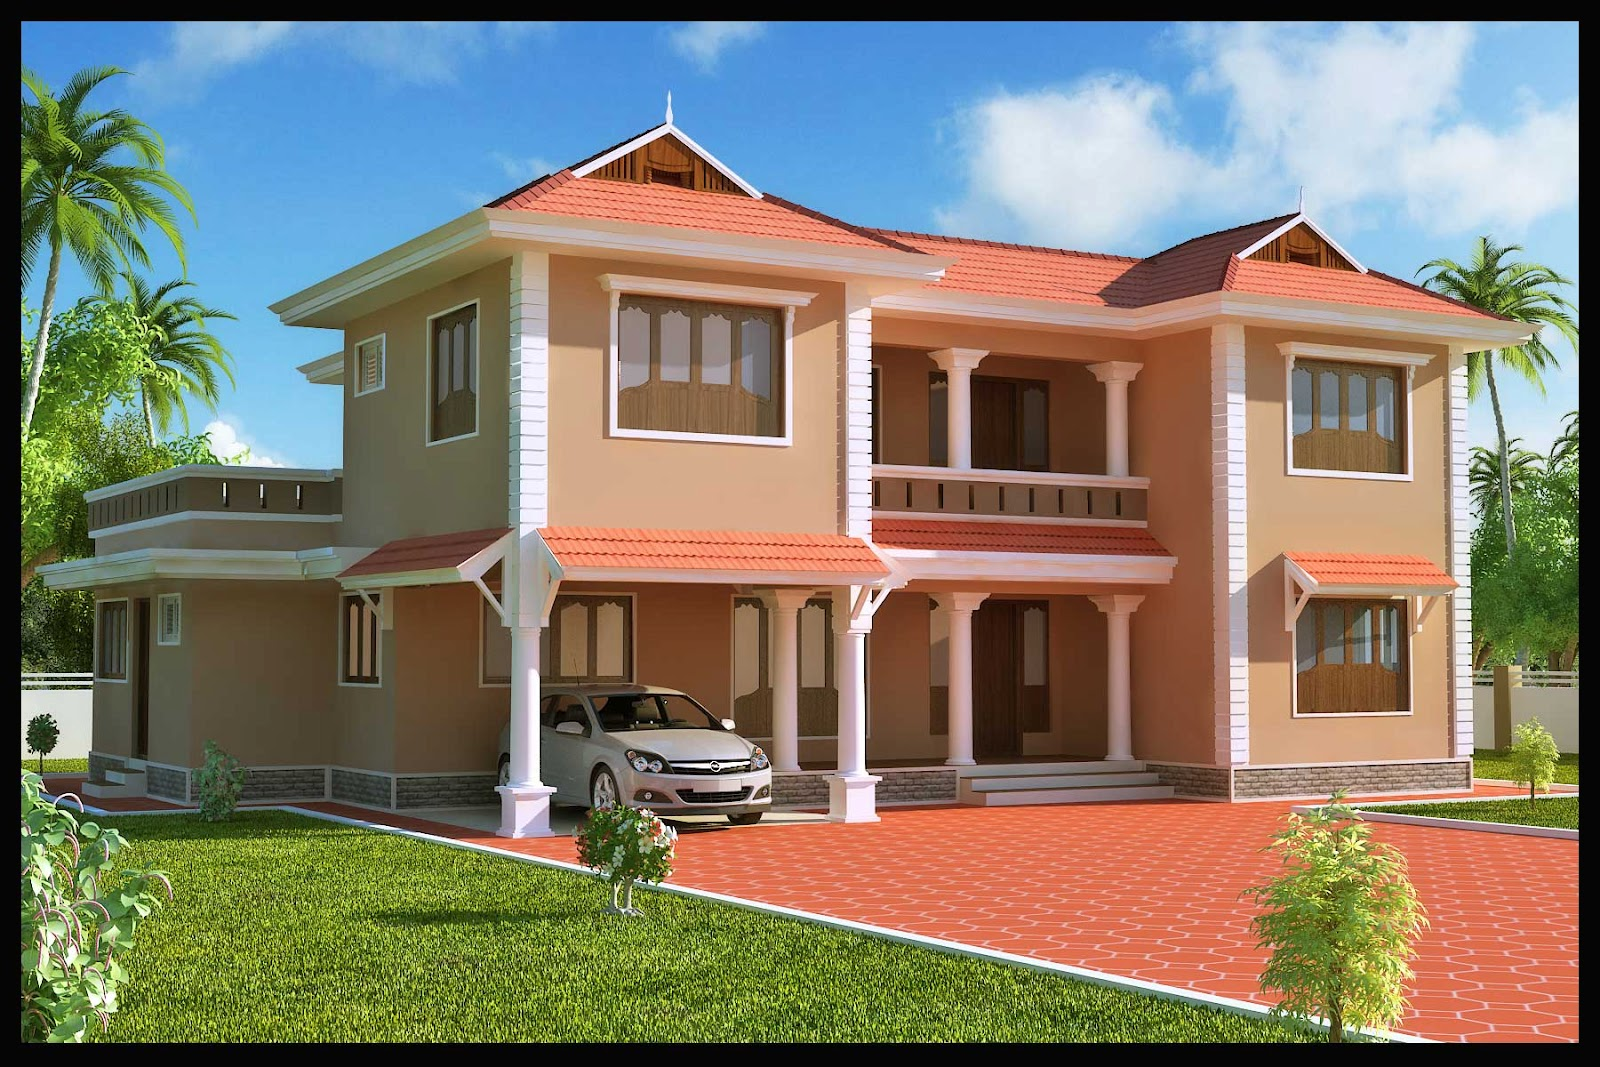 Kerala Building Construction: 4 BHK Villa